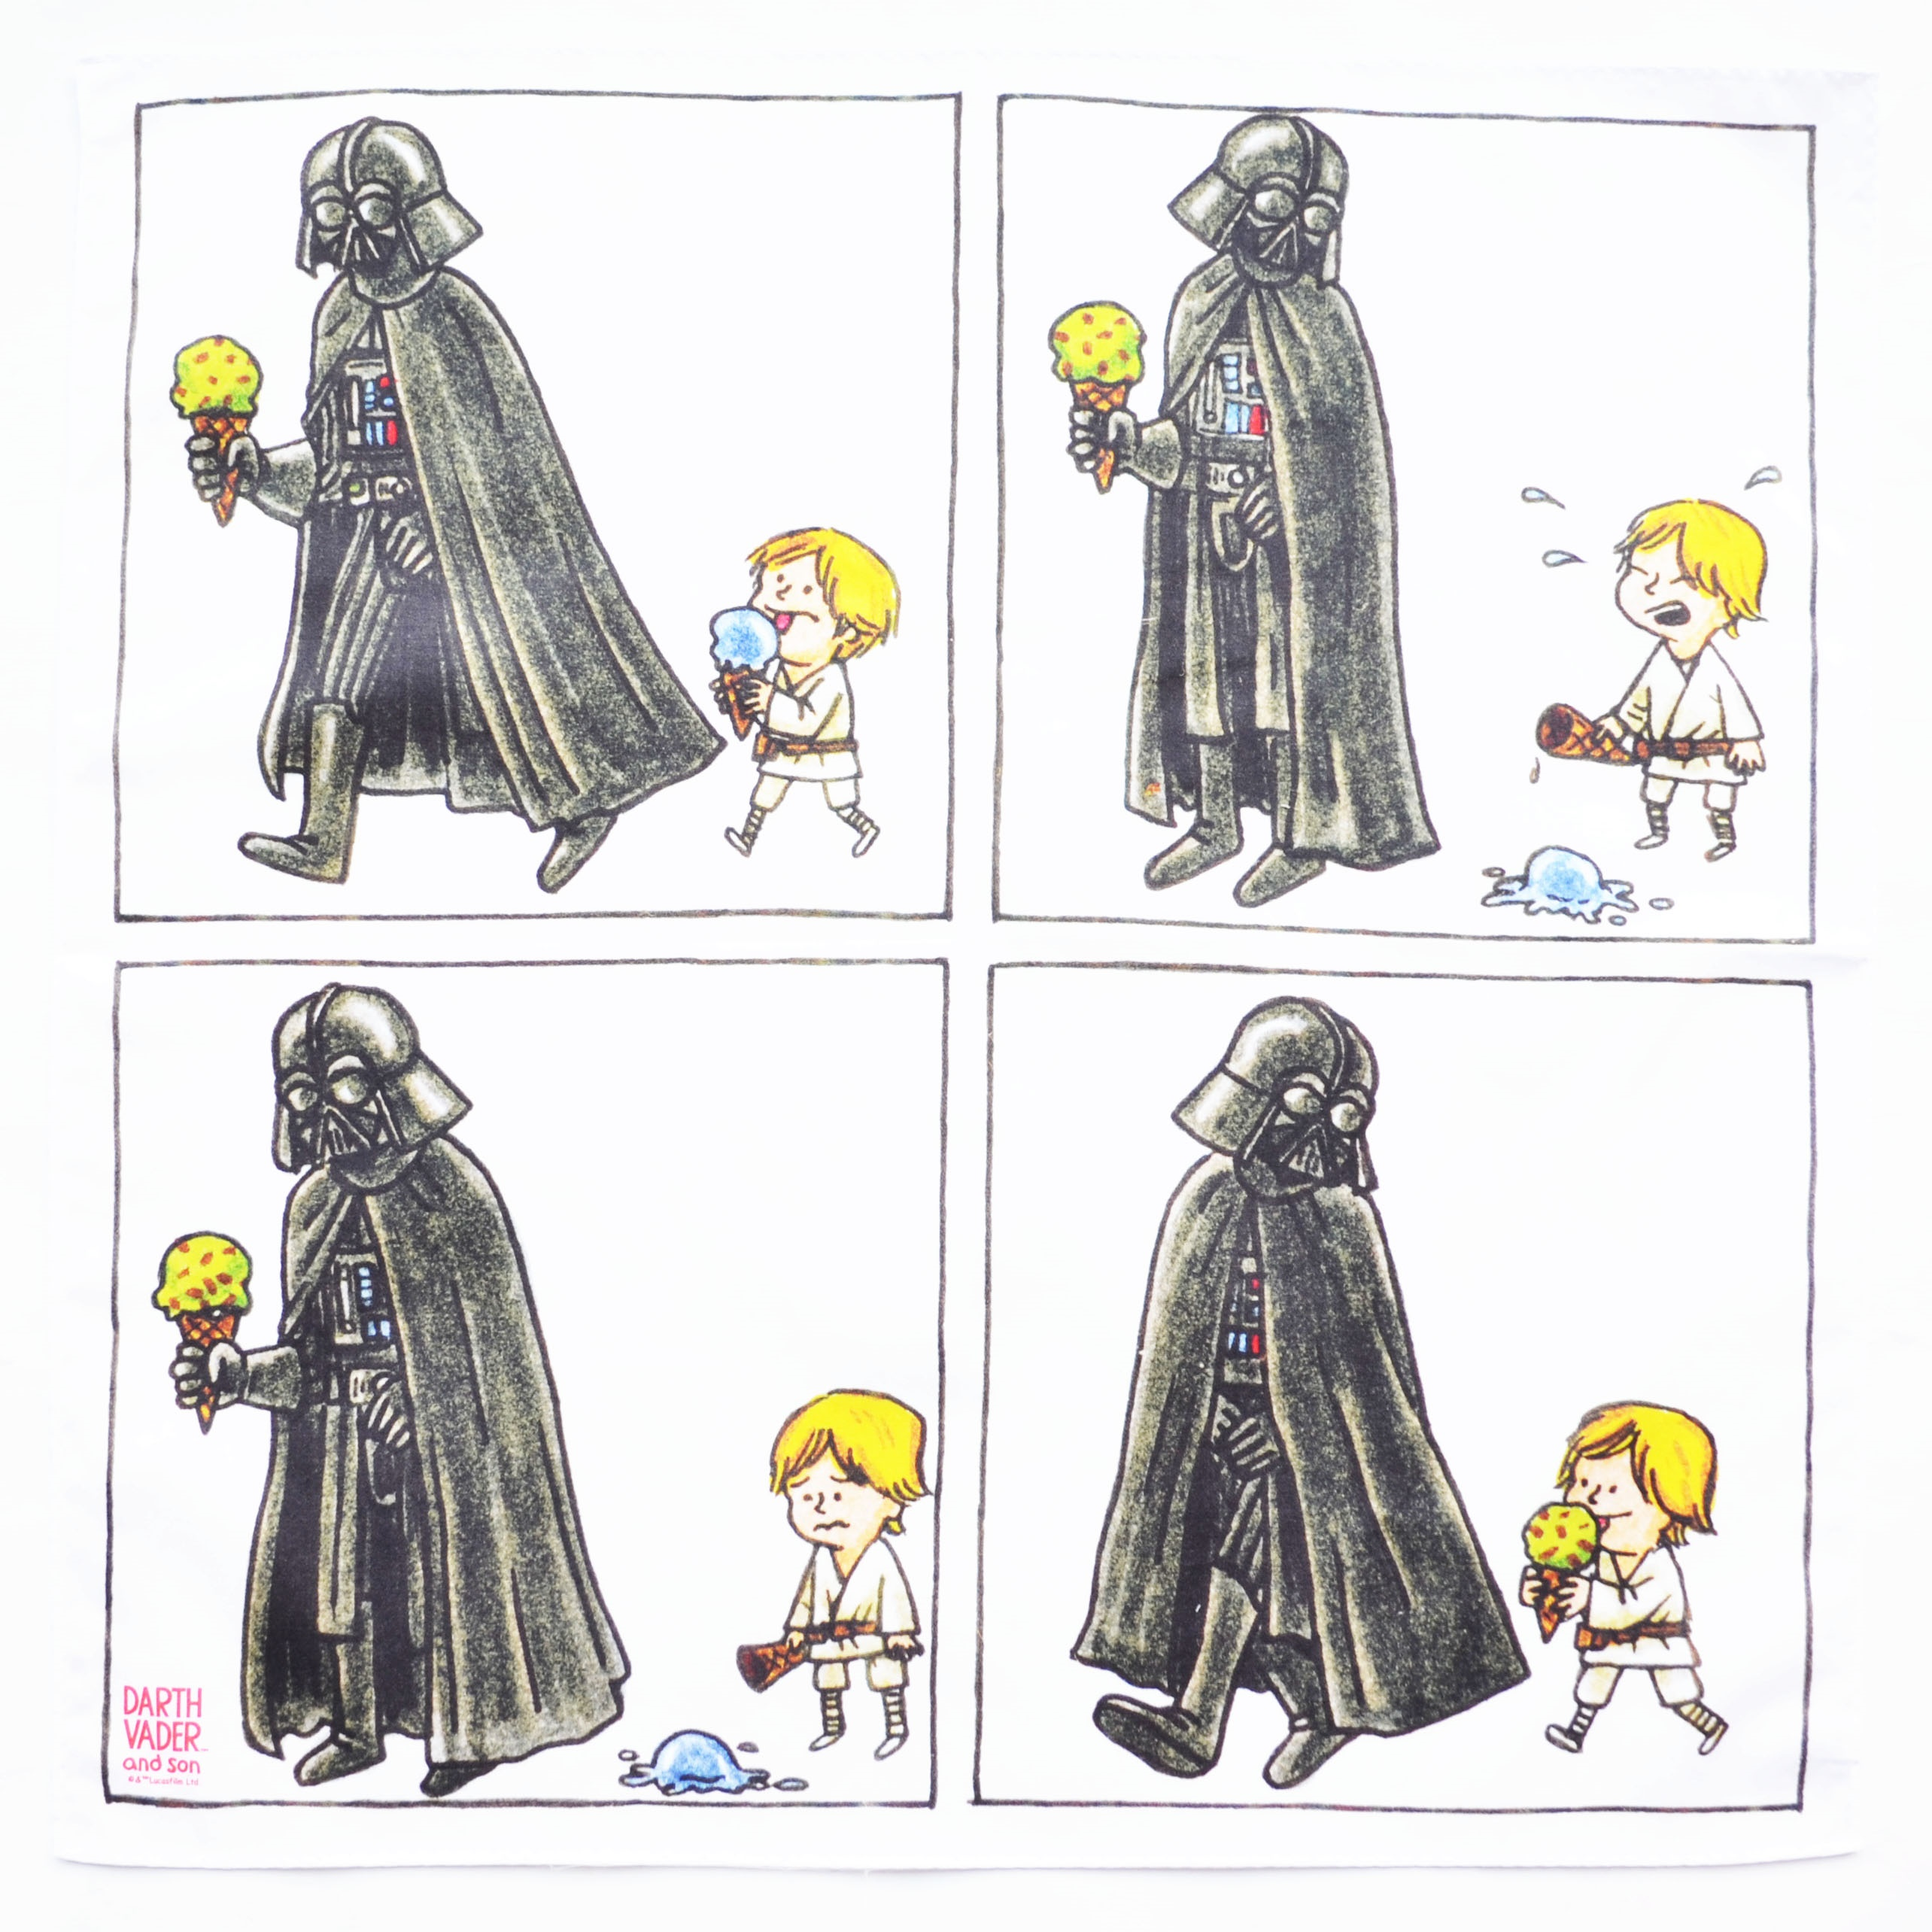 DARTH VADAR AND SONハンカチ3